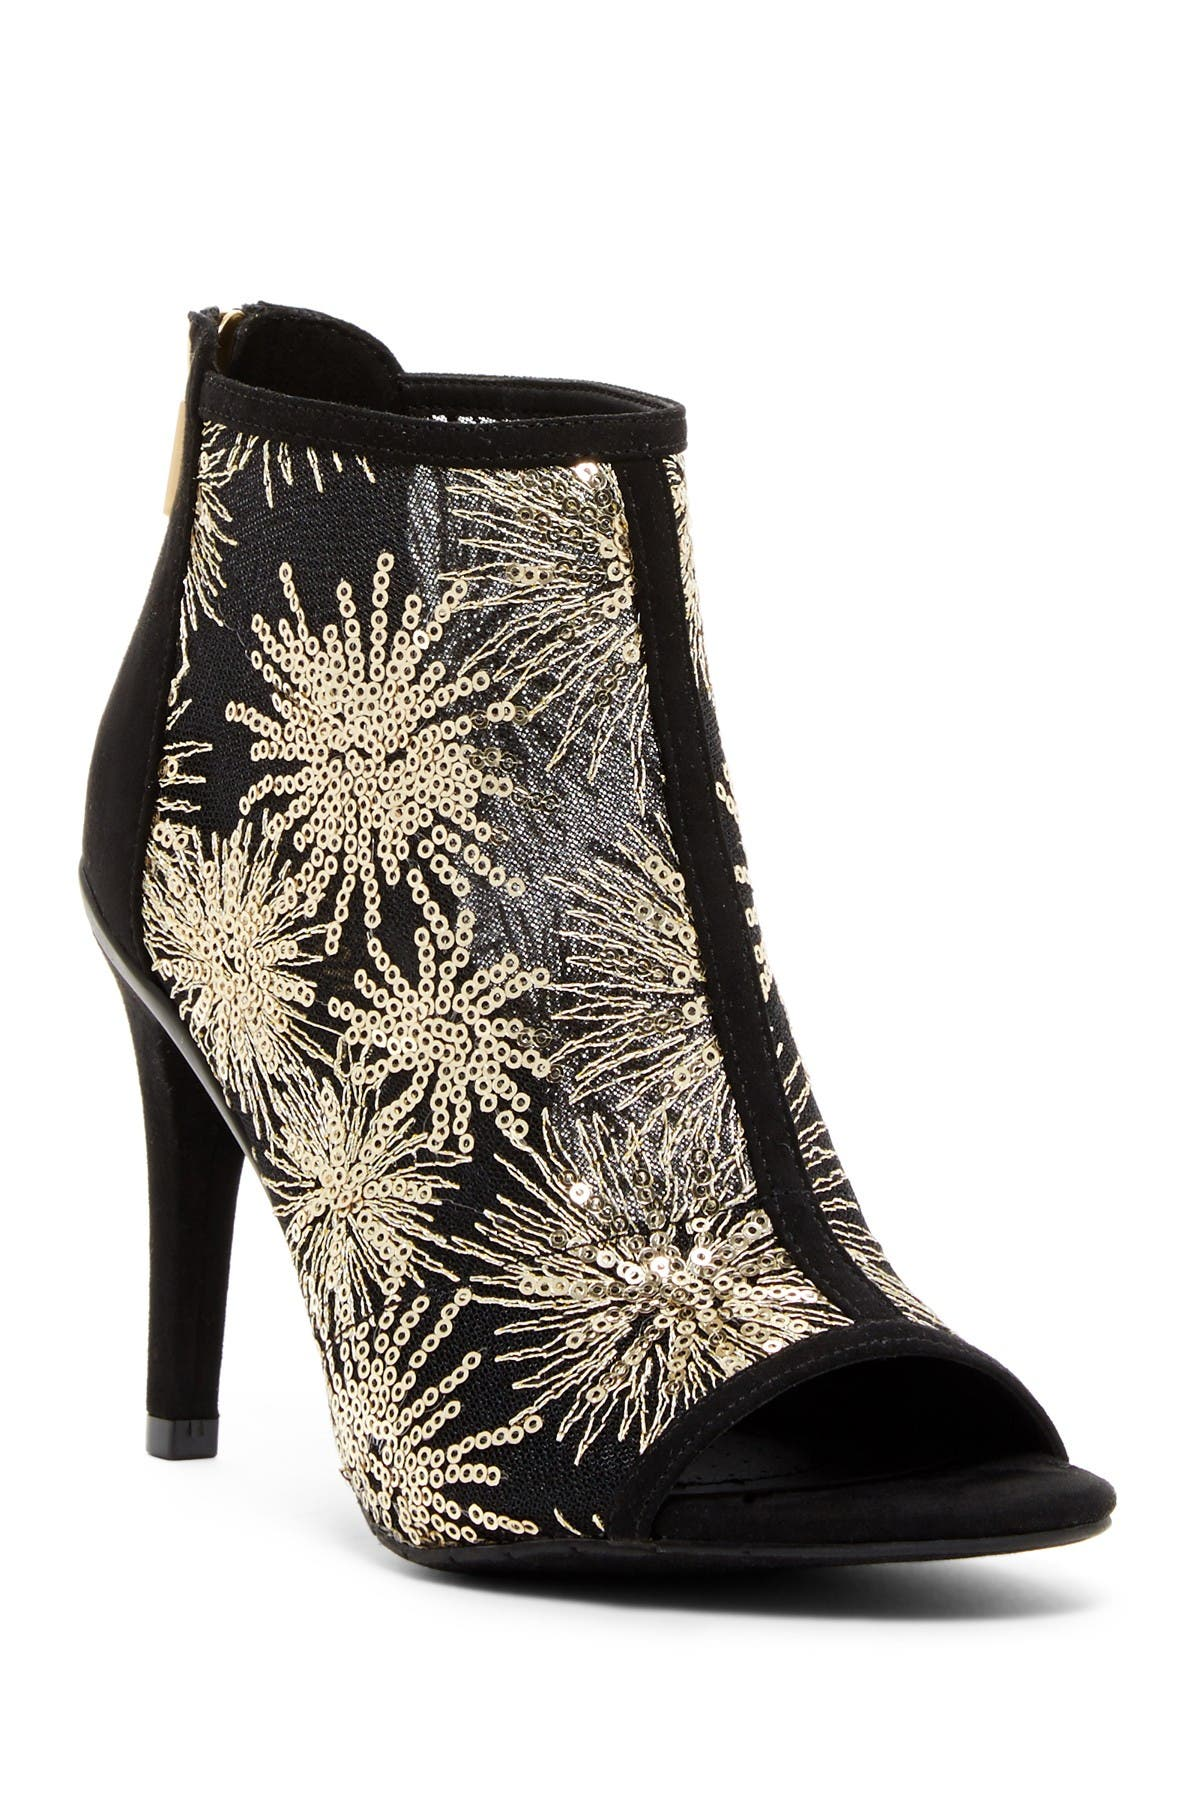 Image of Kenneth Cole Reaction Smash Time Sequins Peep Toe Stiletto Bootie